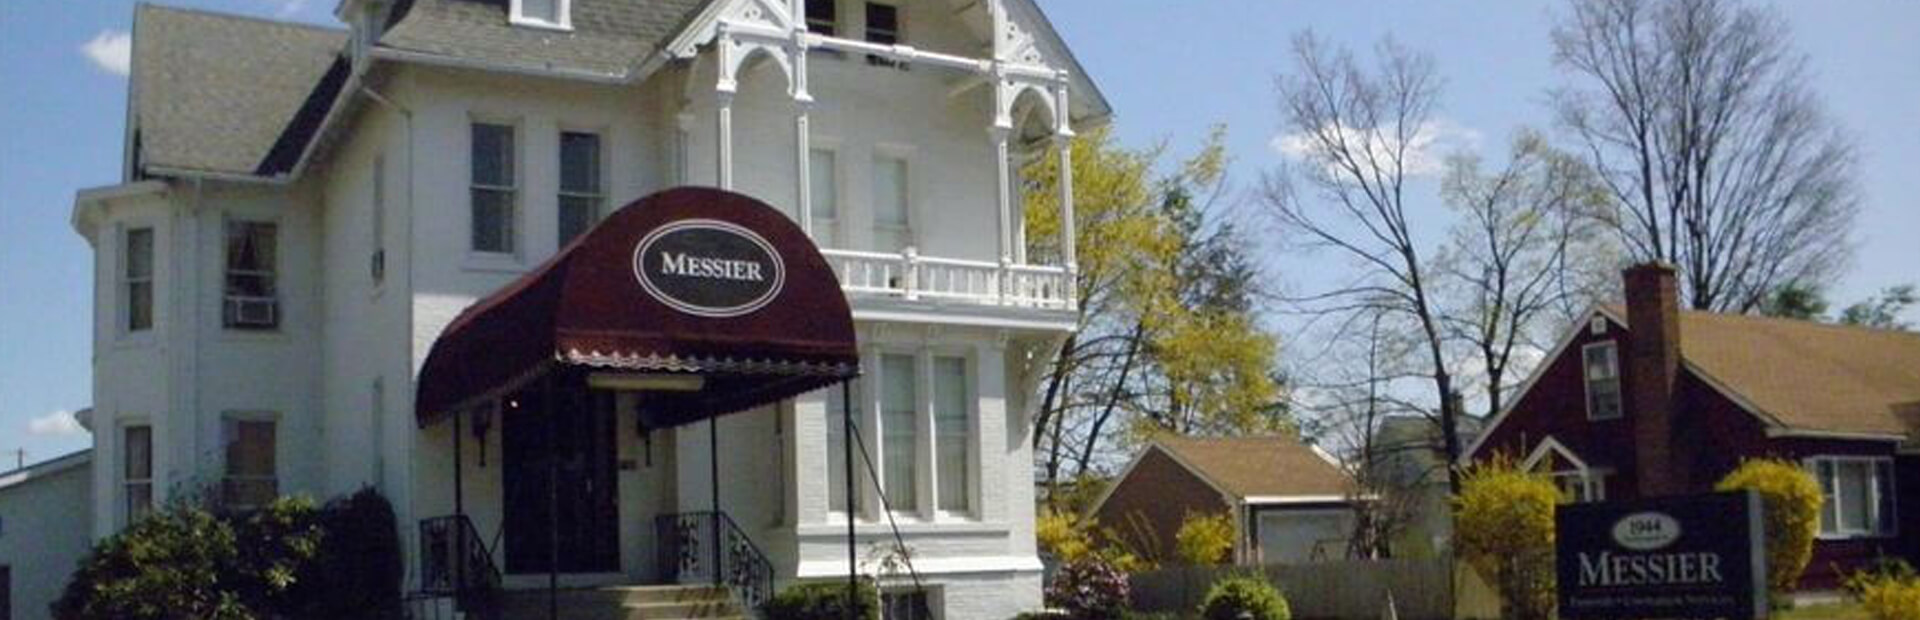 Messier Funeral Home in Holyoke, MA